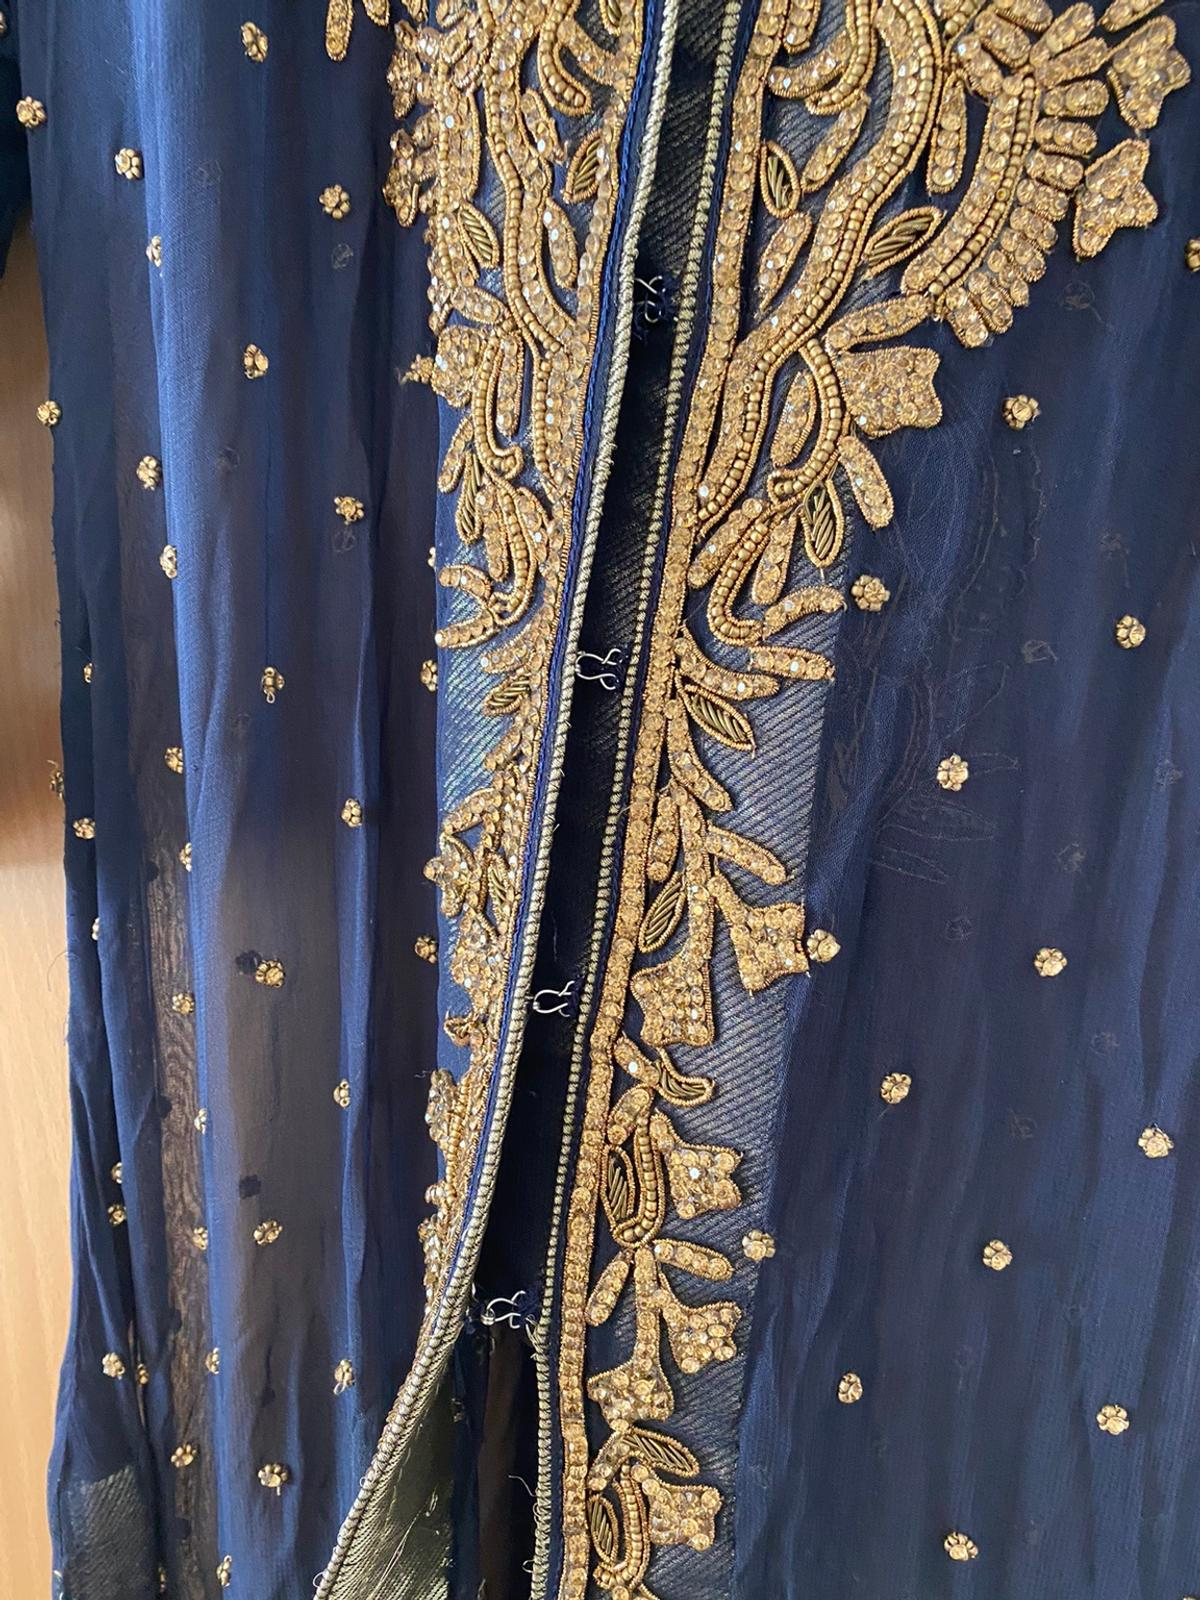 "Navy blue heavy gold embroidered full length gown jacket dress in chiffon material Length 58"" Bust 40"" Wait 35"" Side slits 29"" approximately Used once in very good condition £7 postage as it's heavy in weigh or local collect Prefer payment method by bank transfer or cash on collection RRP £250"